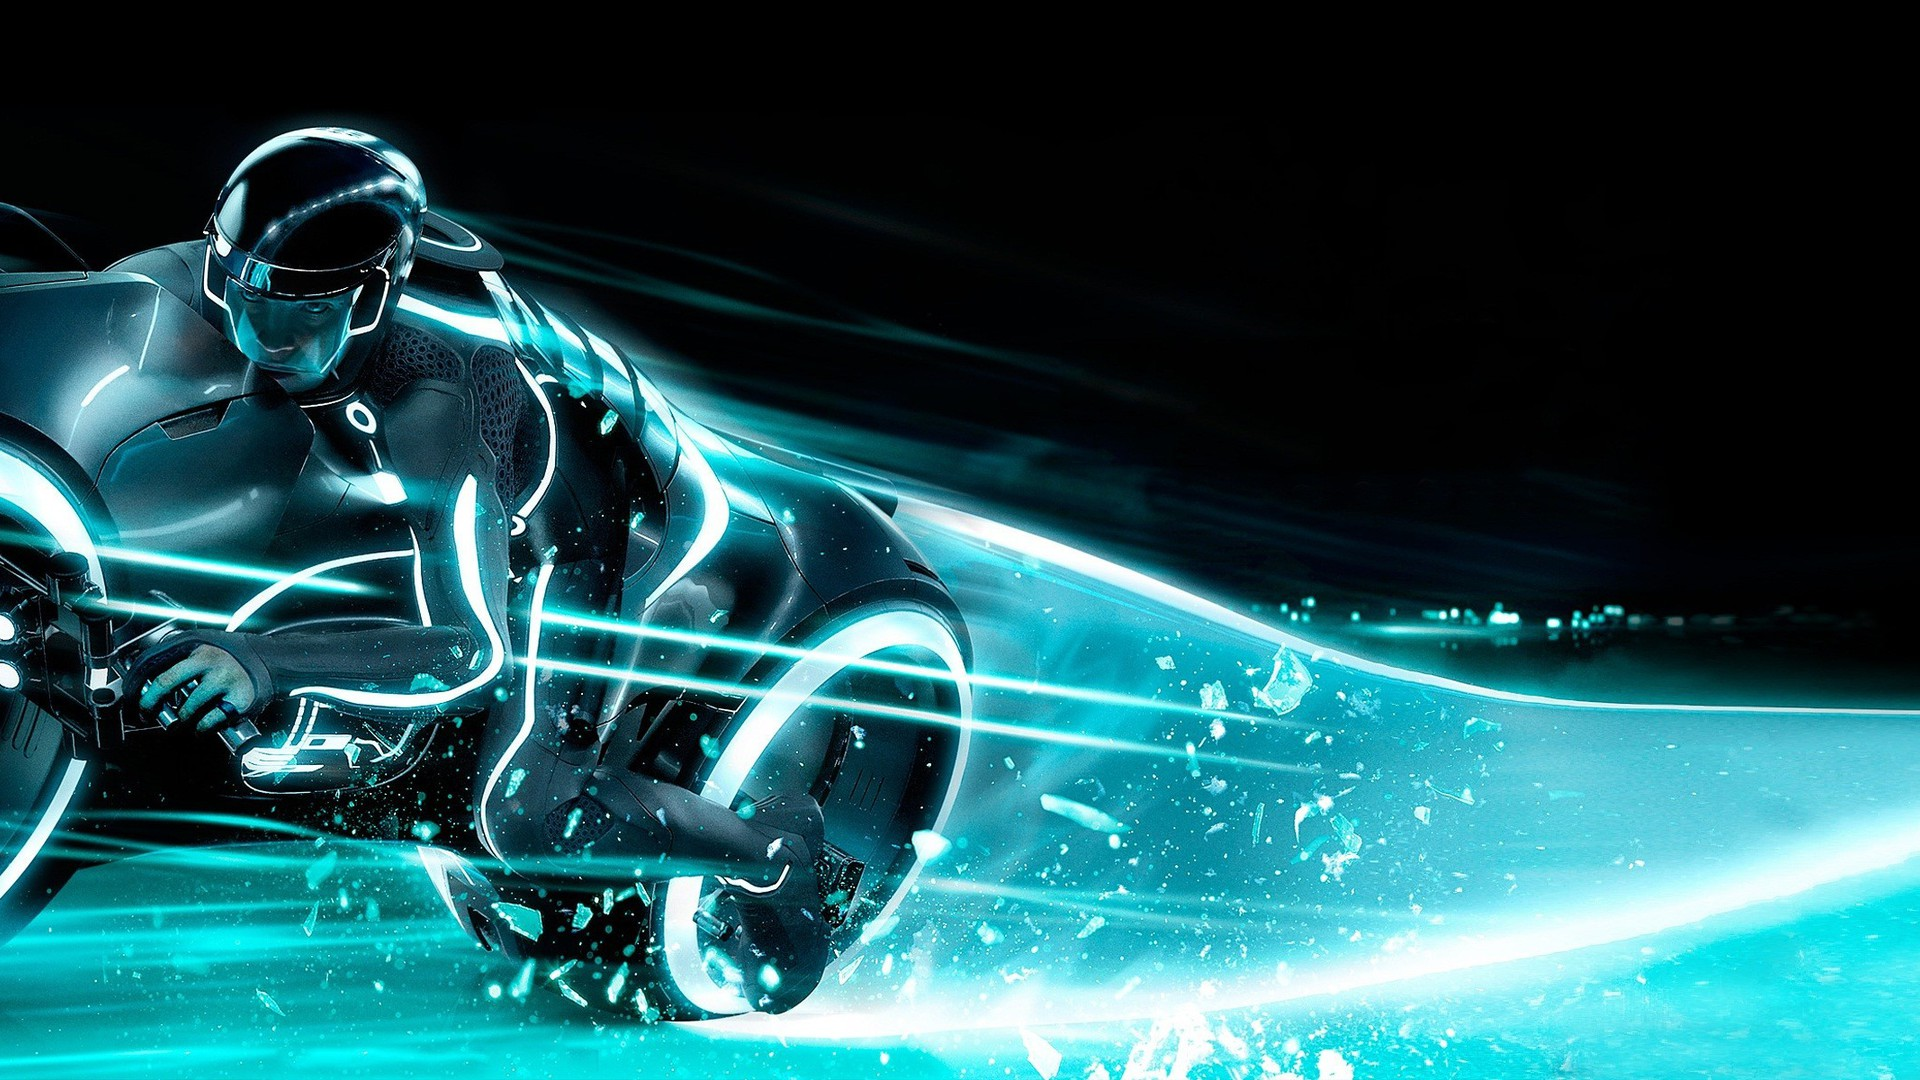 awesome tronlegacy wallpapers - photo #20